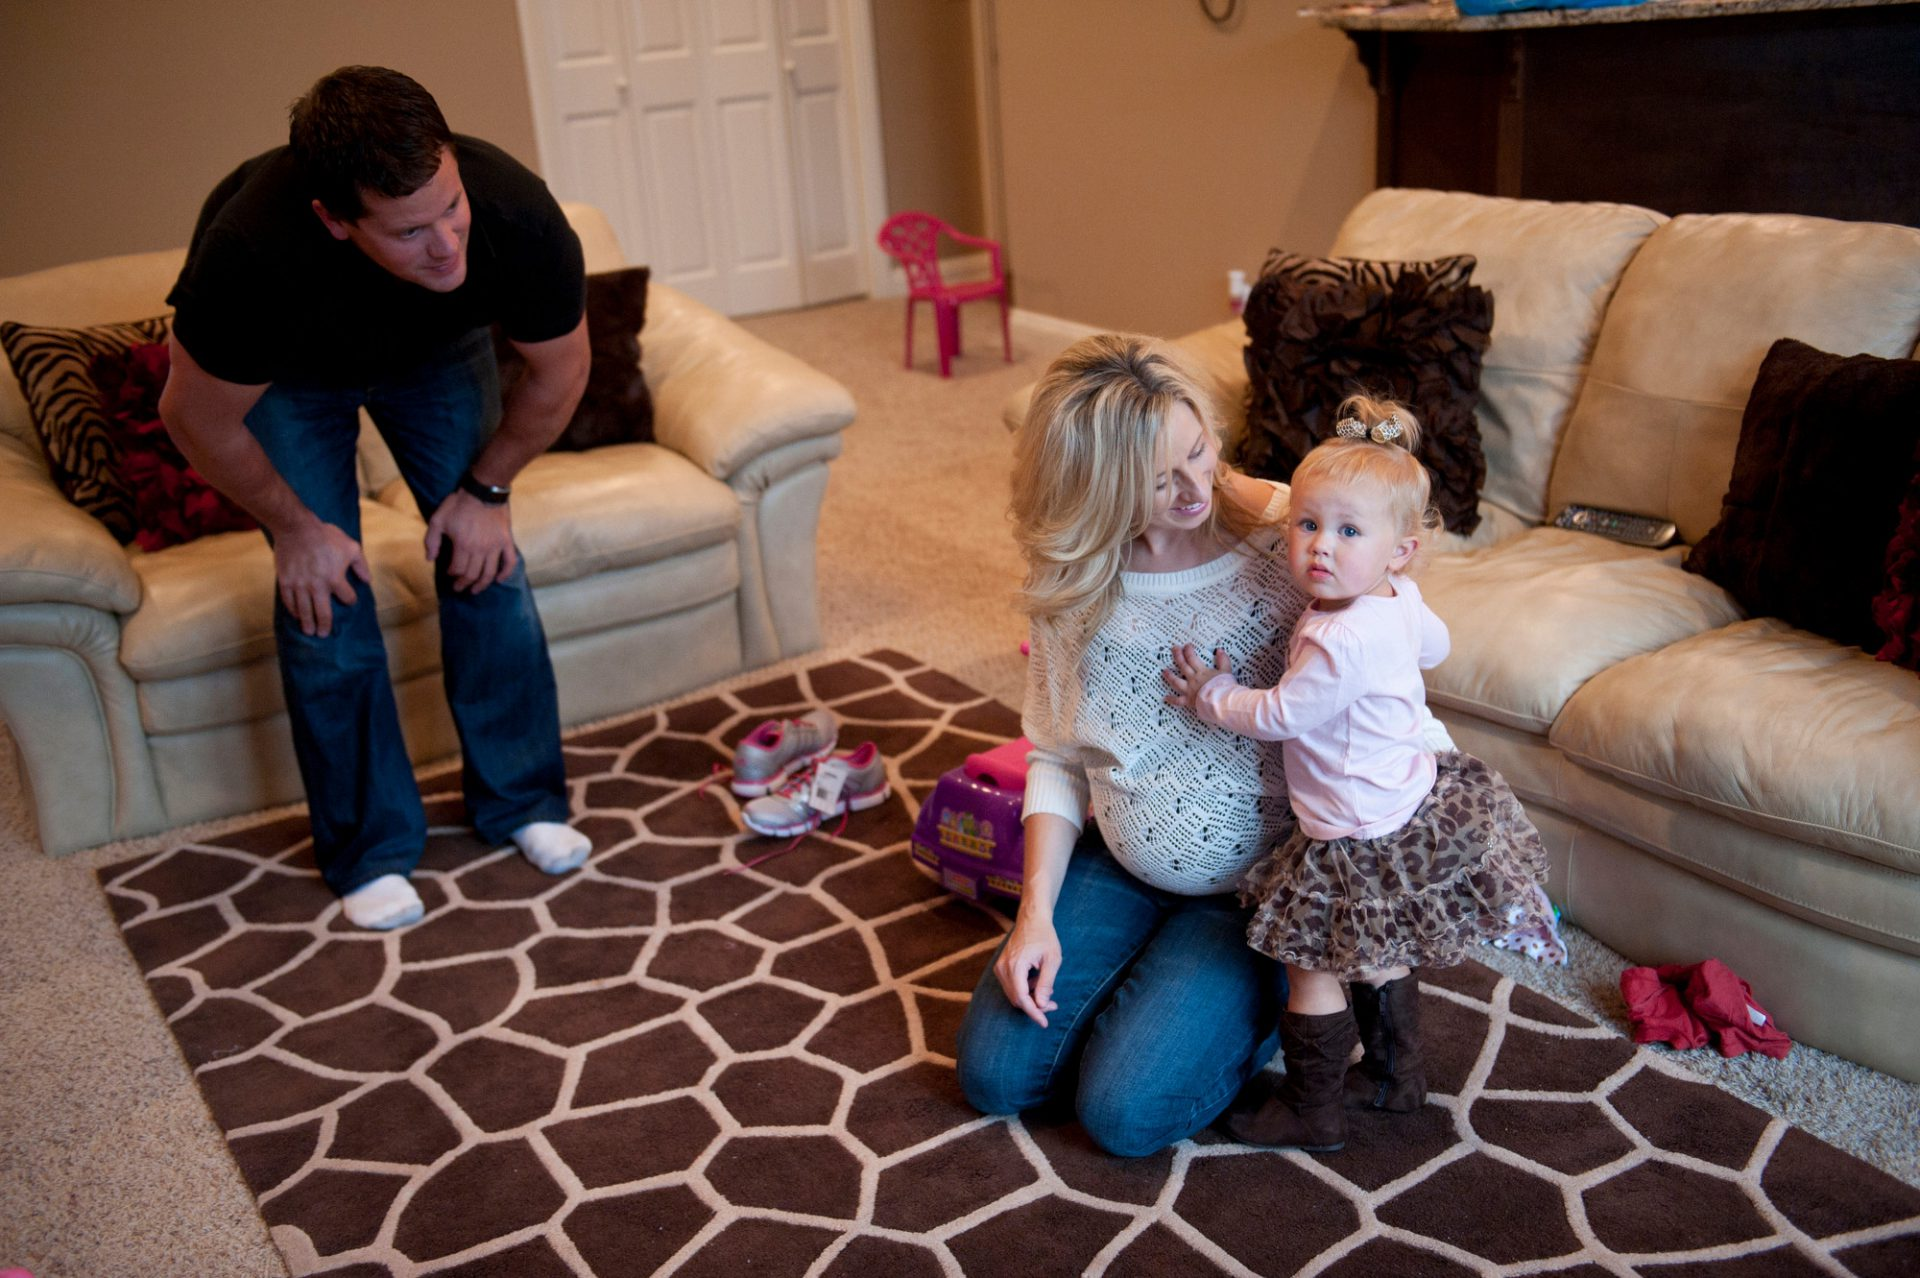 Photo: A young couple play with their little girl in Lincoln, Nebraska.